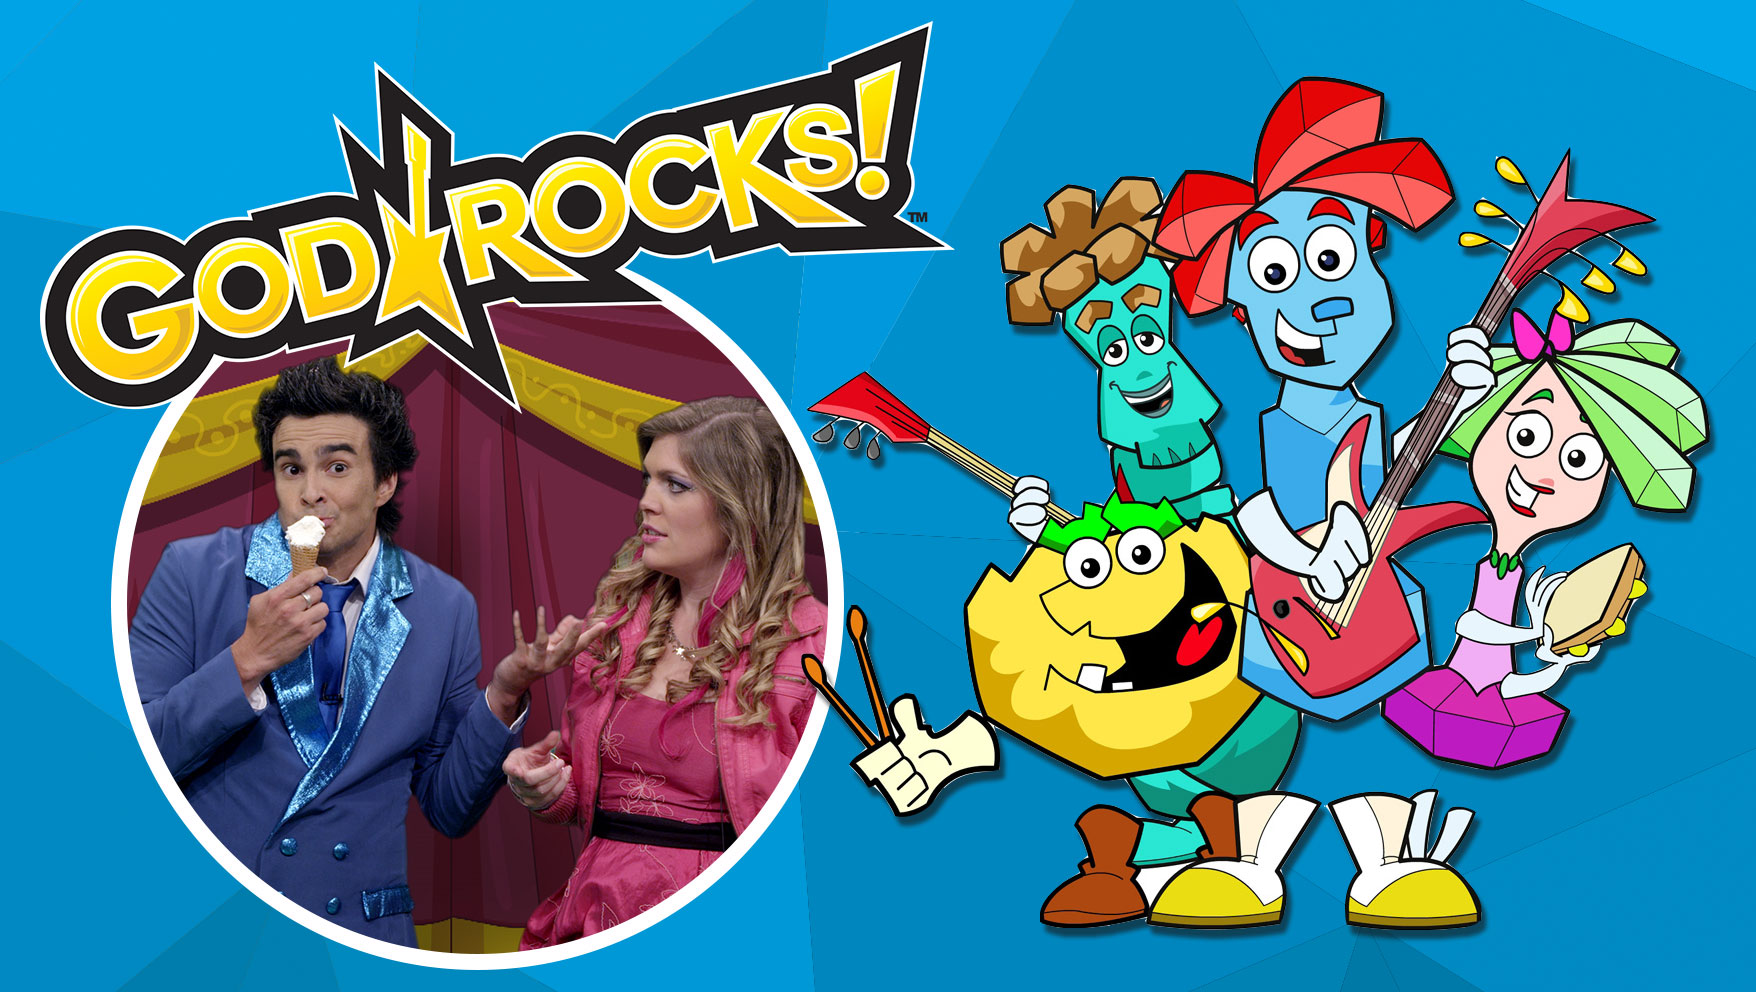 Introducing God Rocks! Animated Series and Parable Playhouse